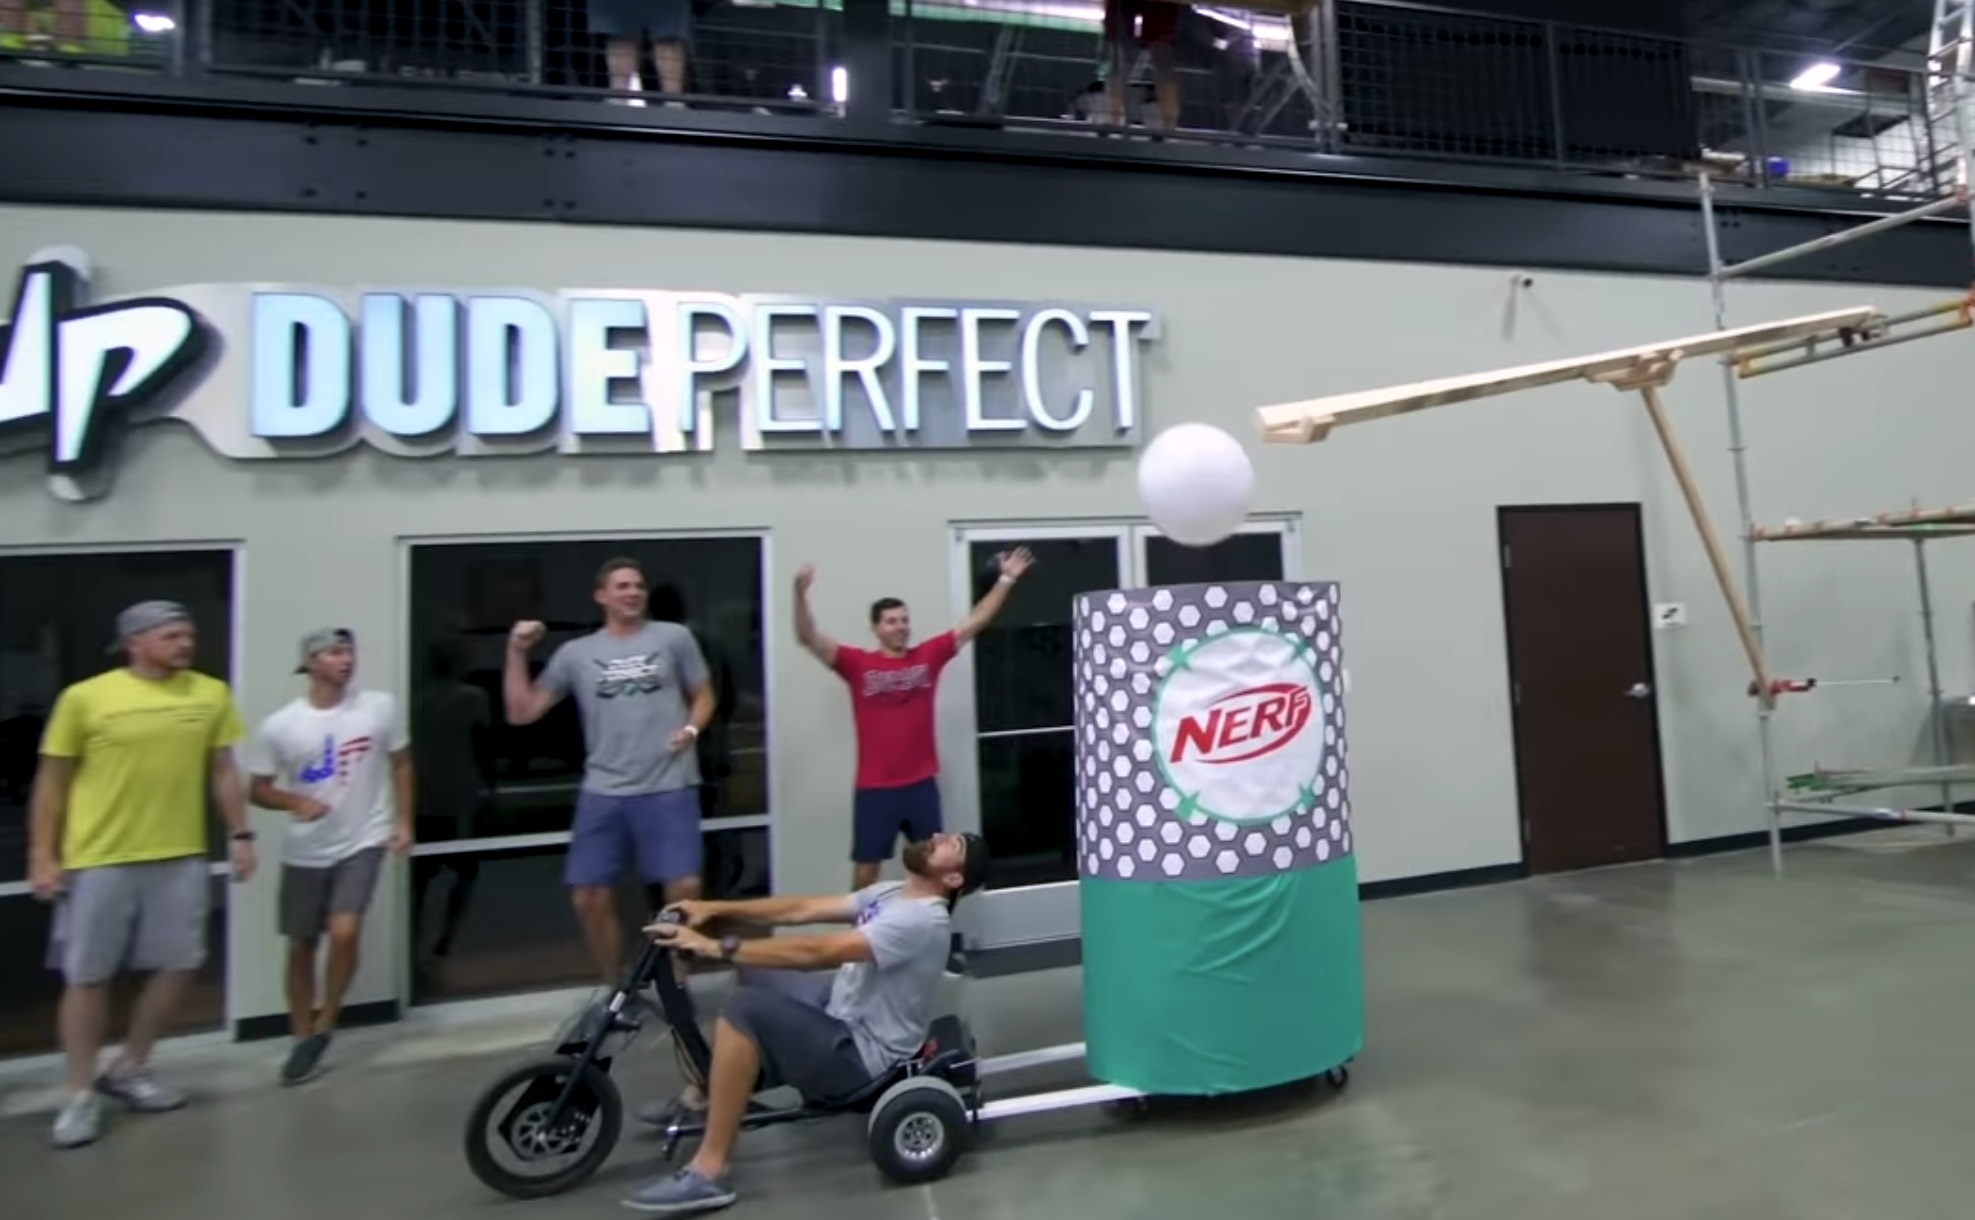 Dude Perfect zhrnuli rok 2018